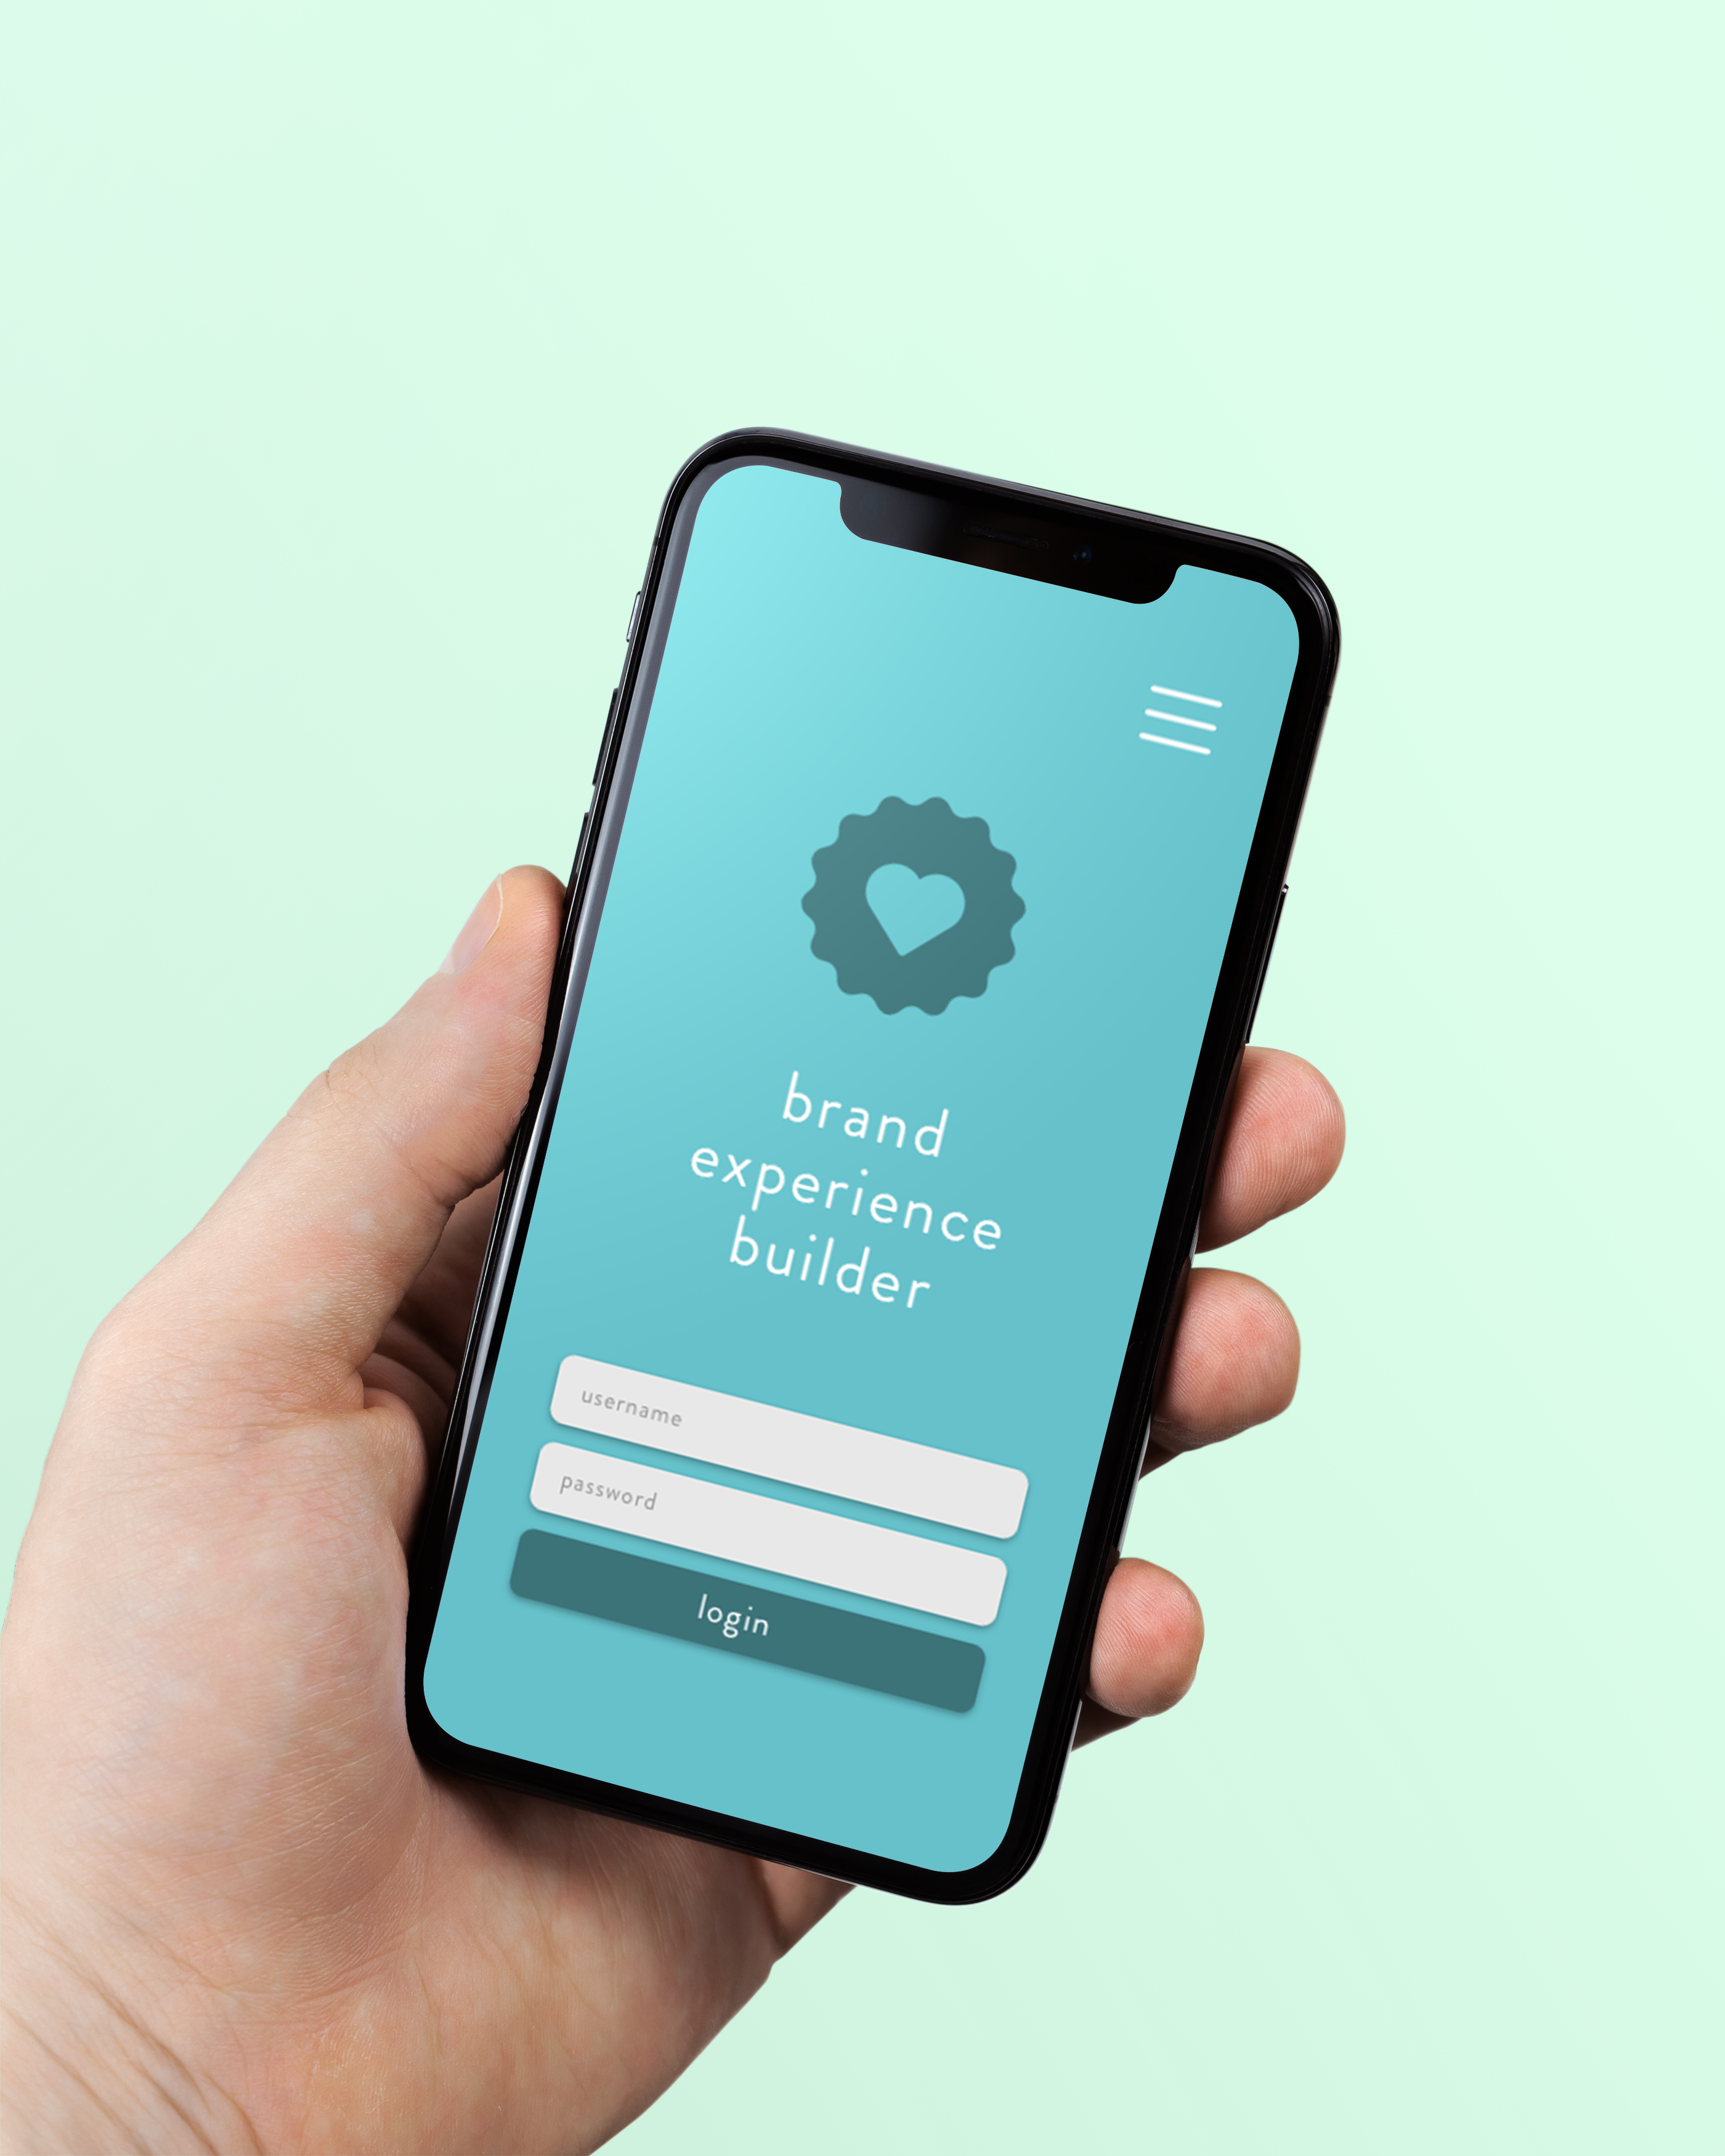 Brand Experience Builder App